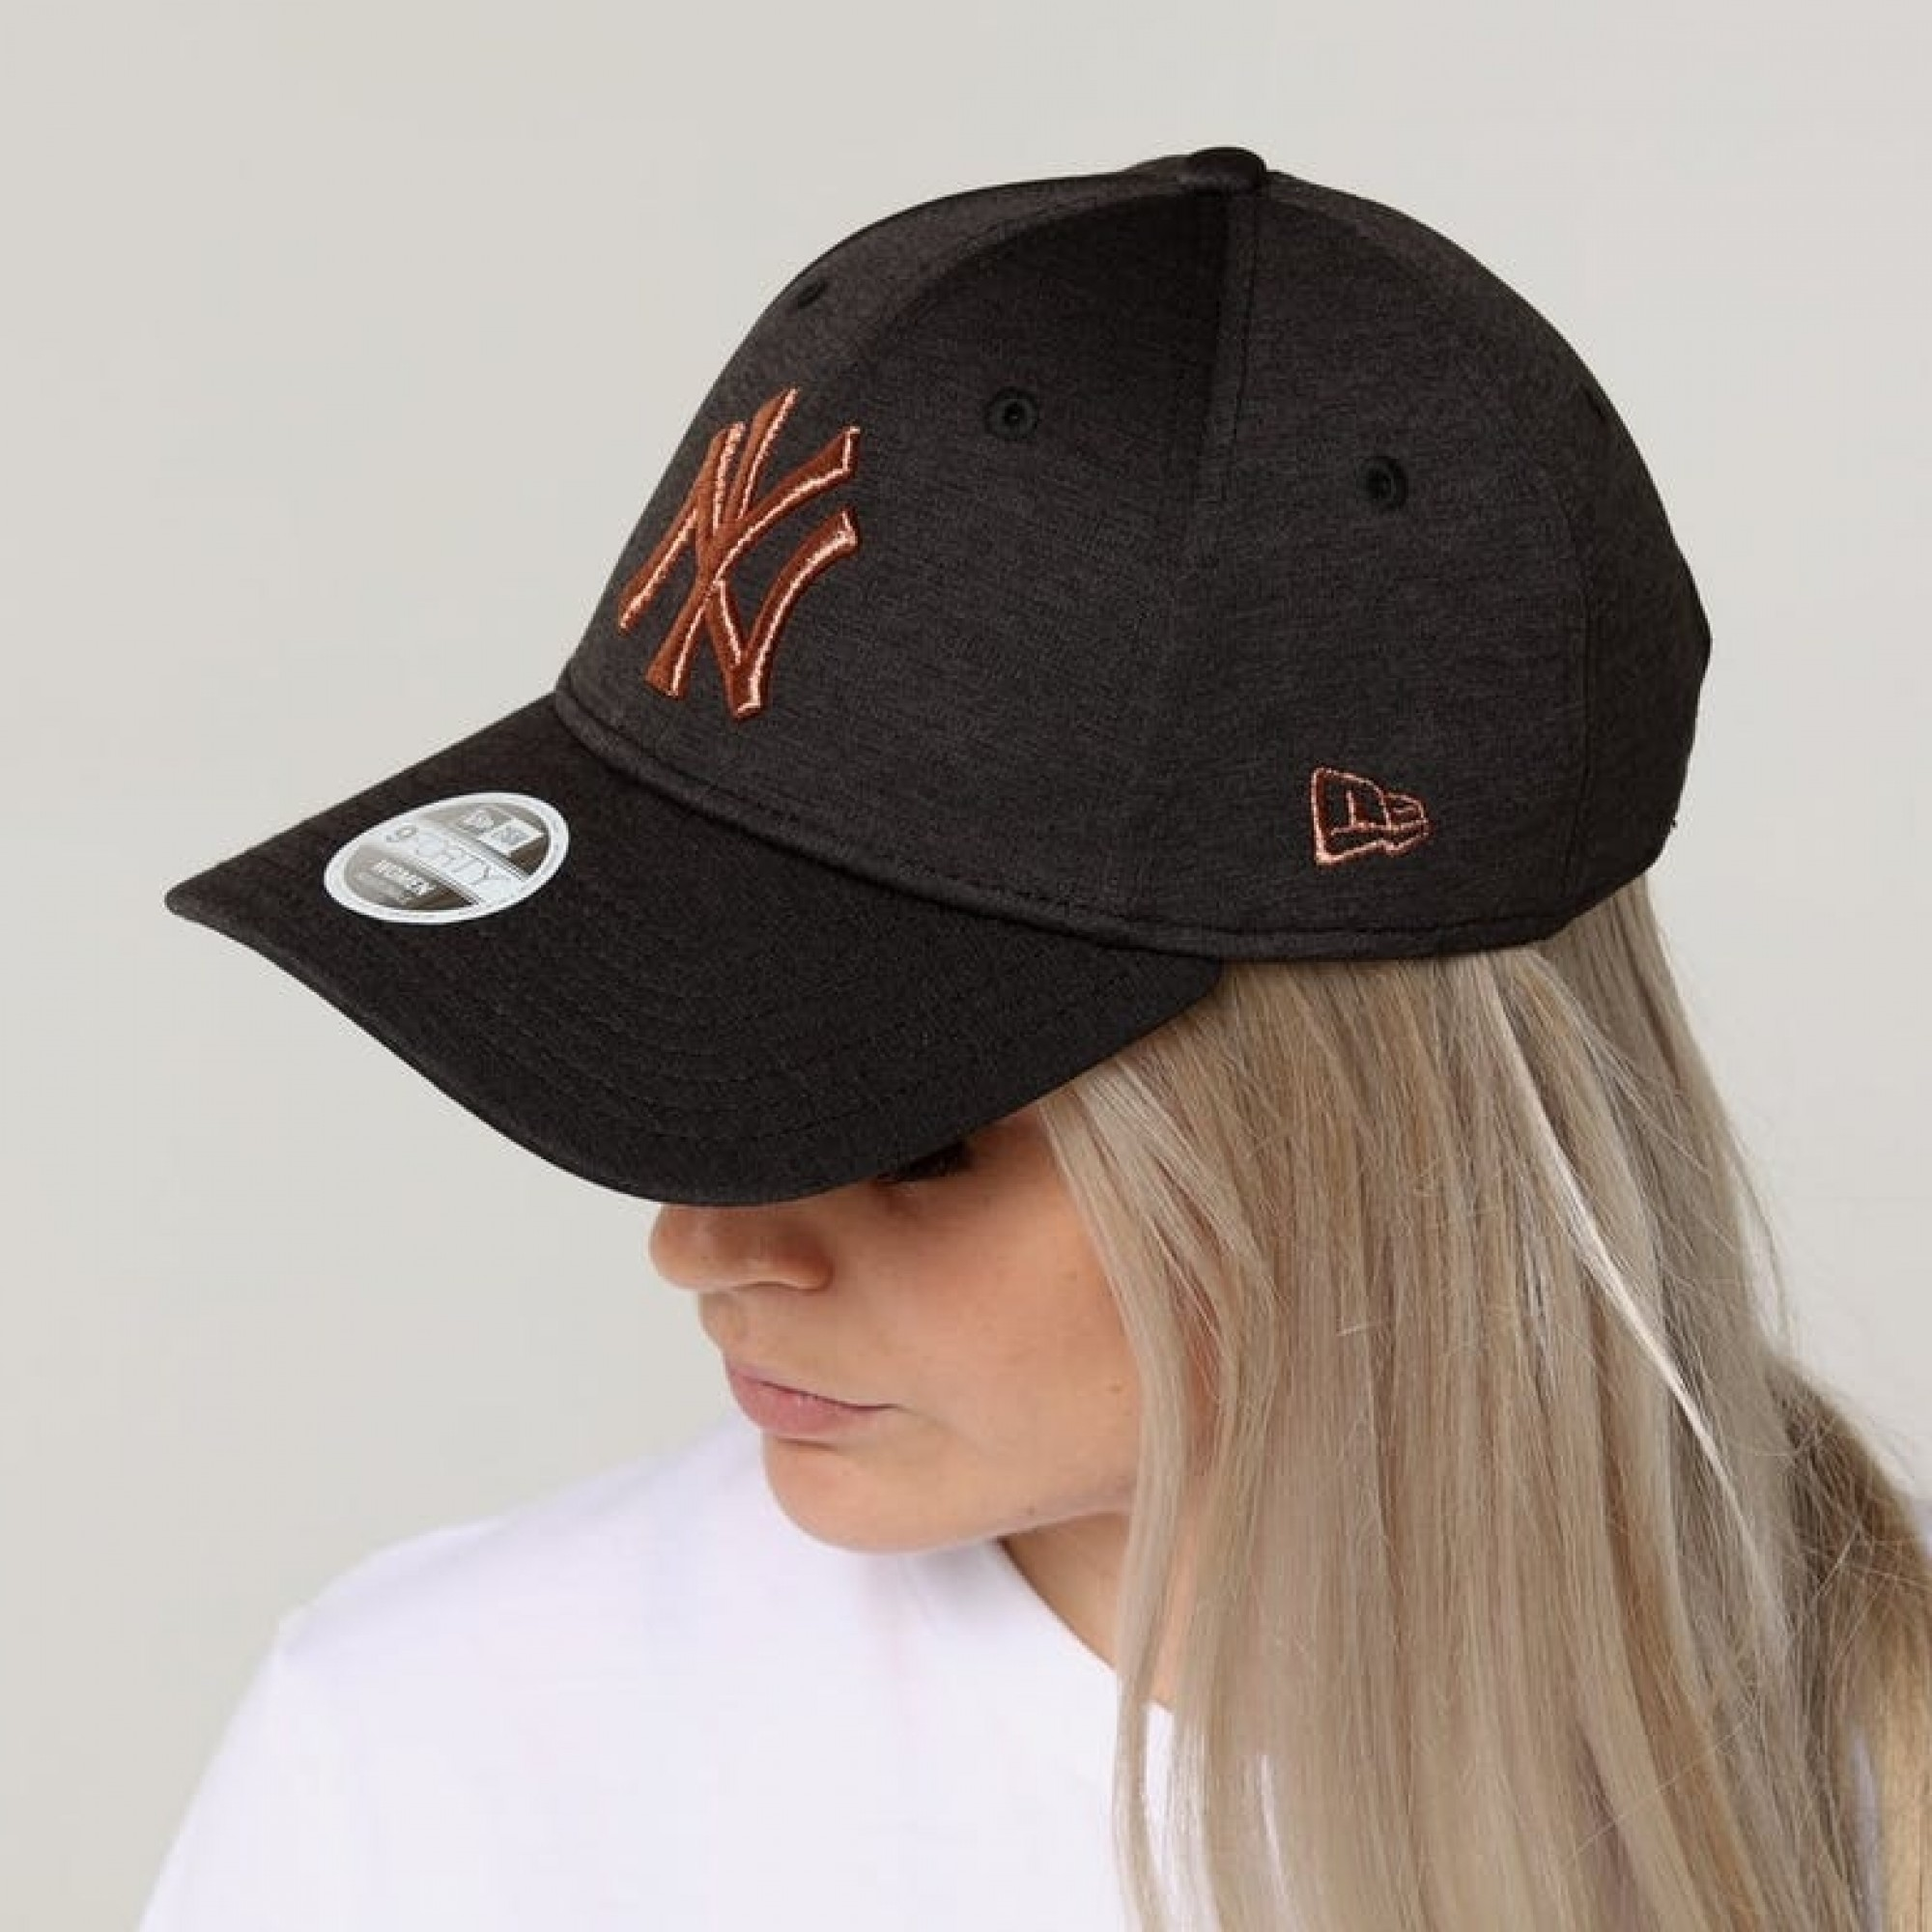 a527ef07af2 Venue Store NEW ERA New York Yankees 940 Womens Strapback Cap - Black  Shadow Tech Copper Free Delivery Over  100